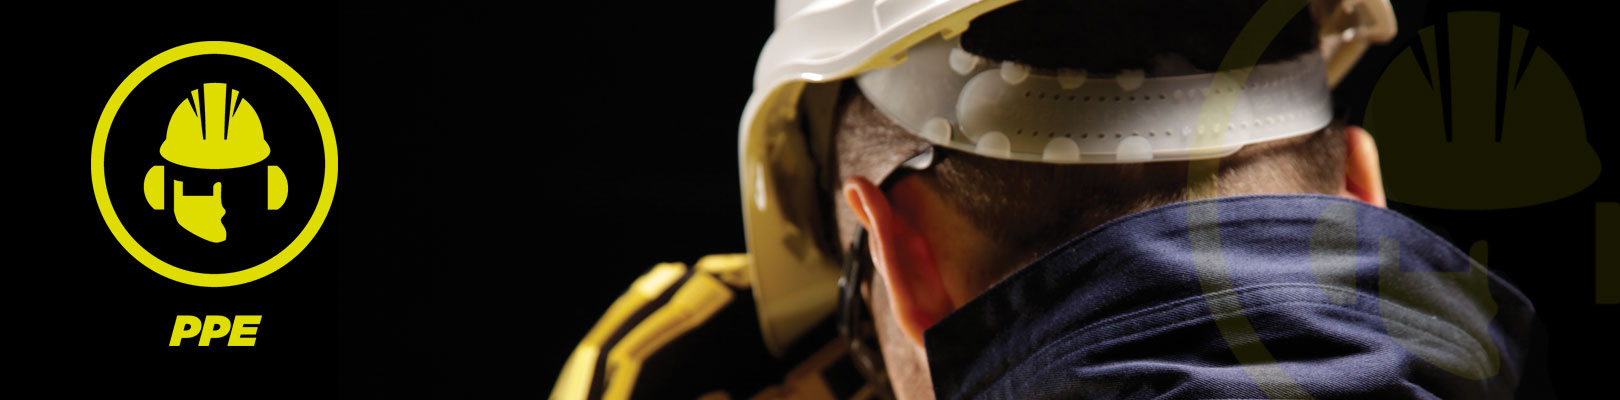 PPE - Personal Protection Equipment at RSEA Safety Online